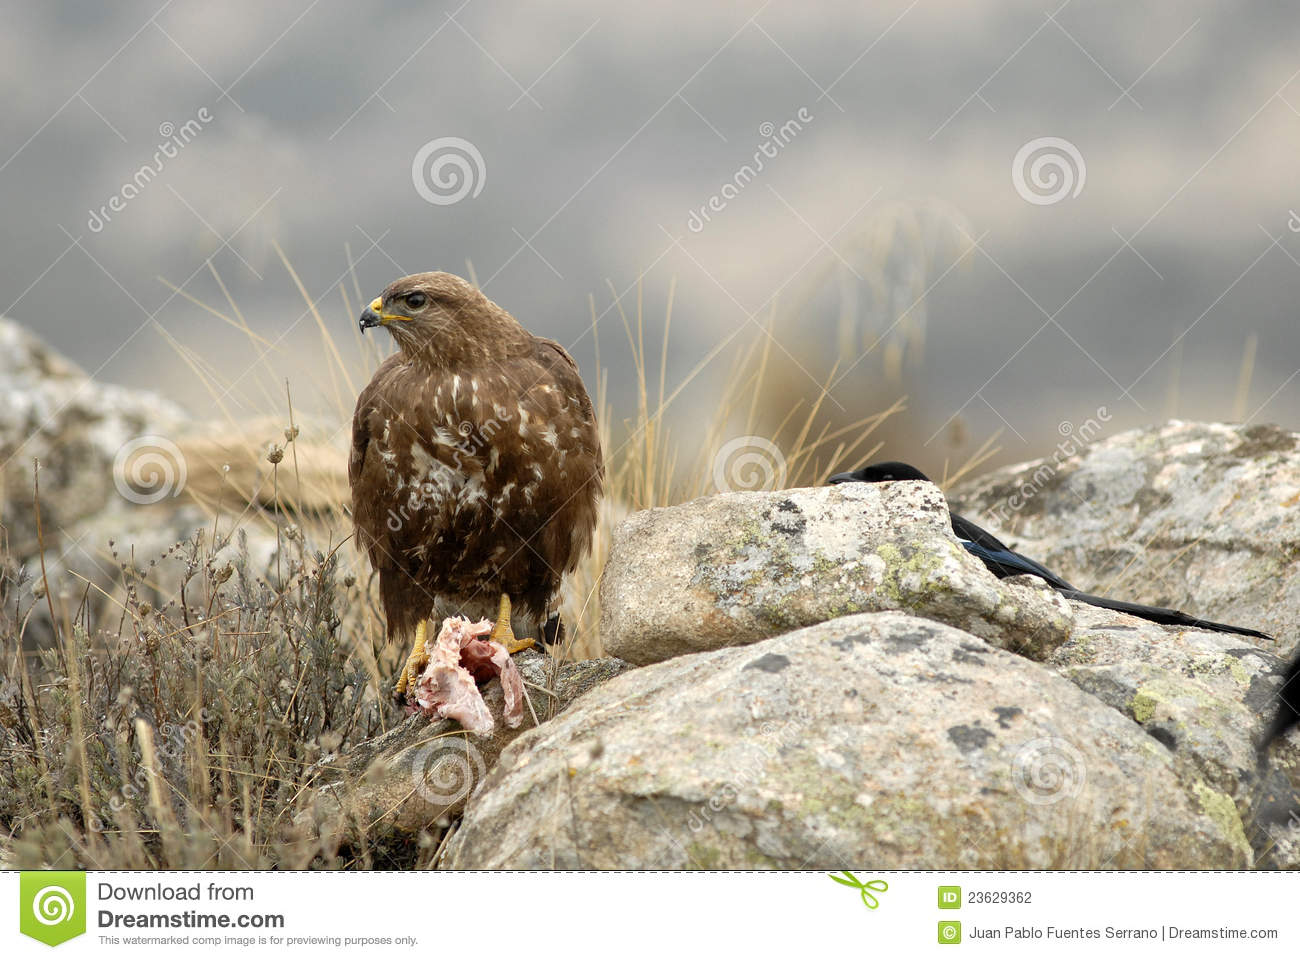 Eagle eating meat - photo#3